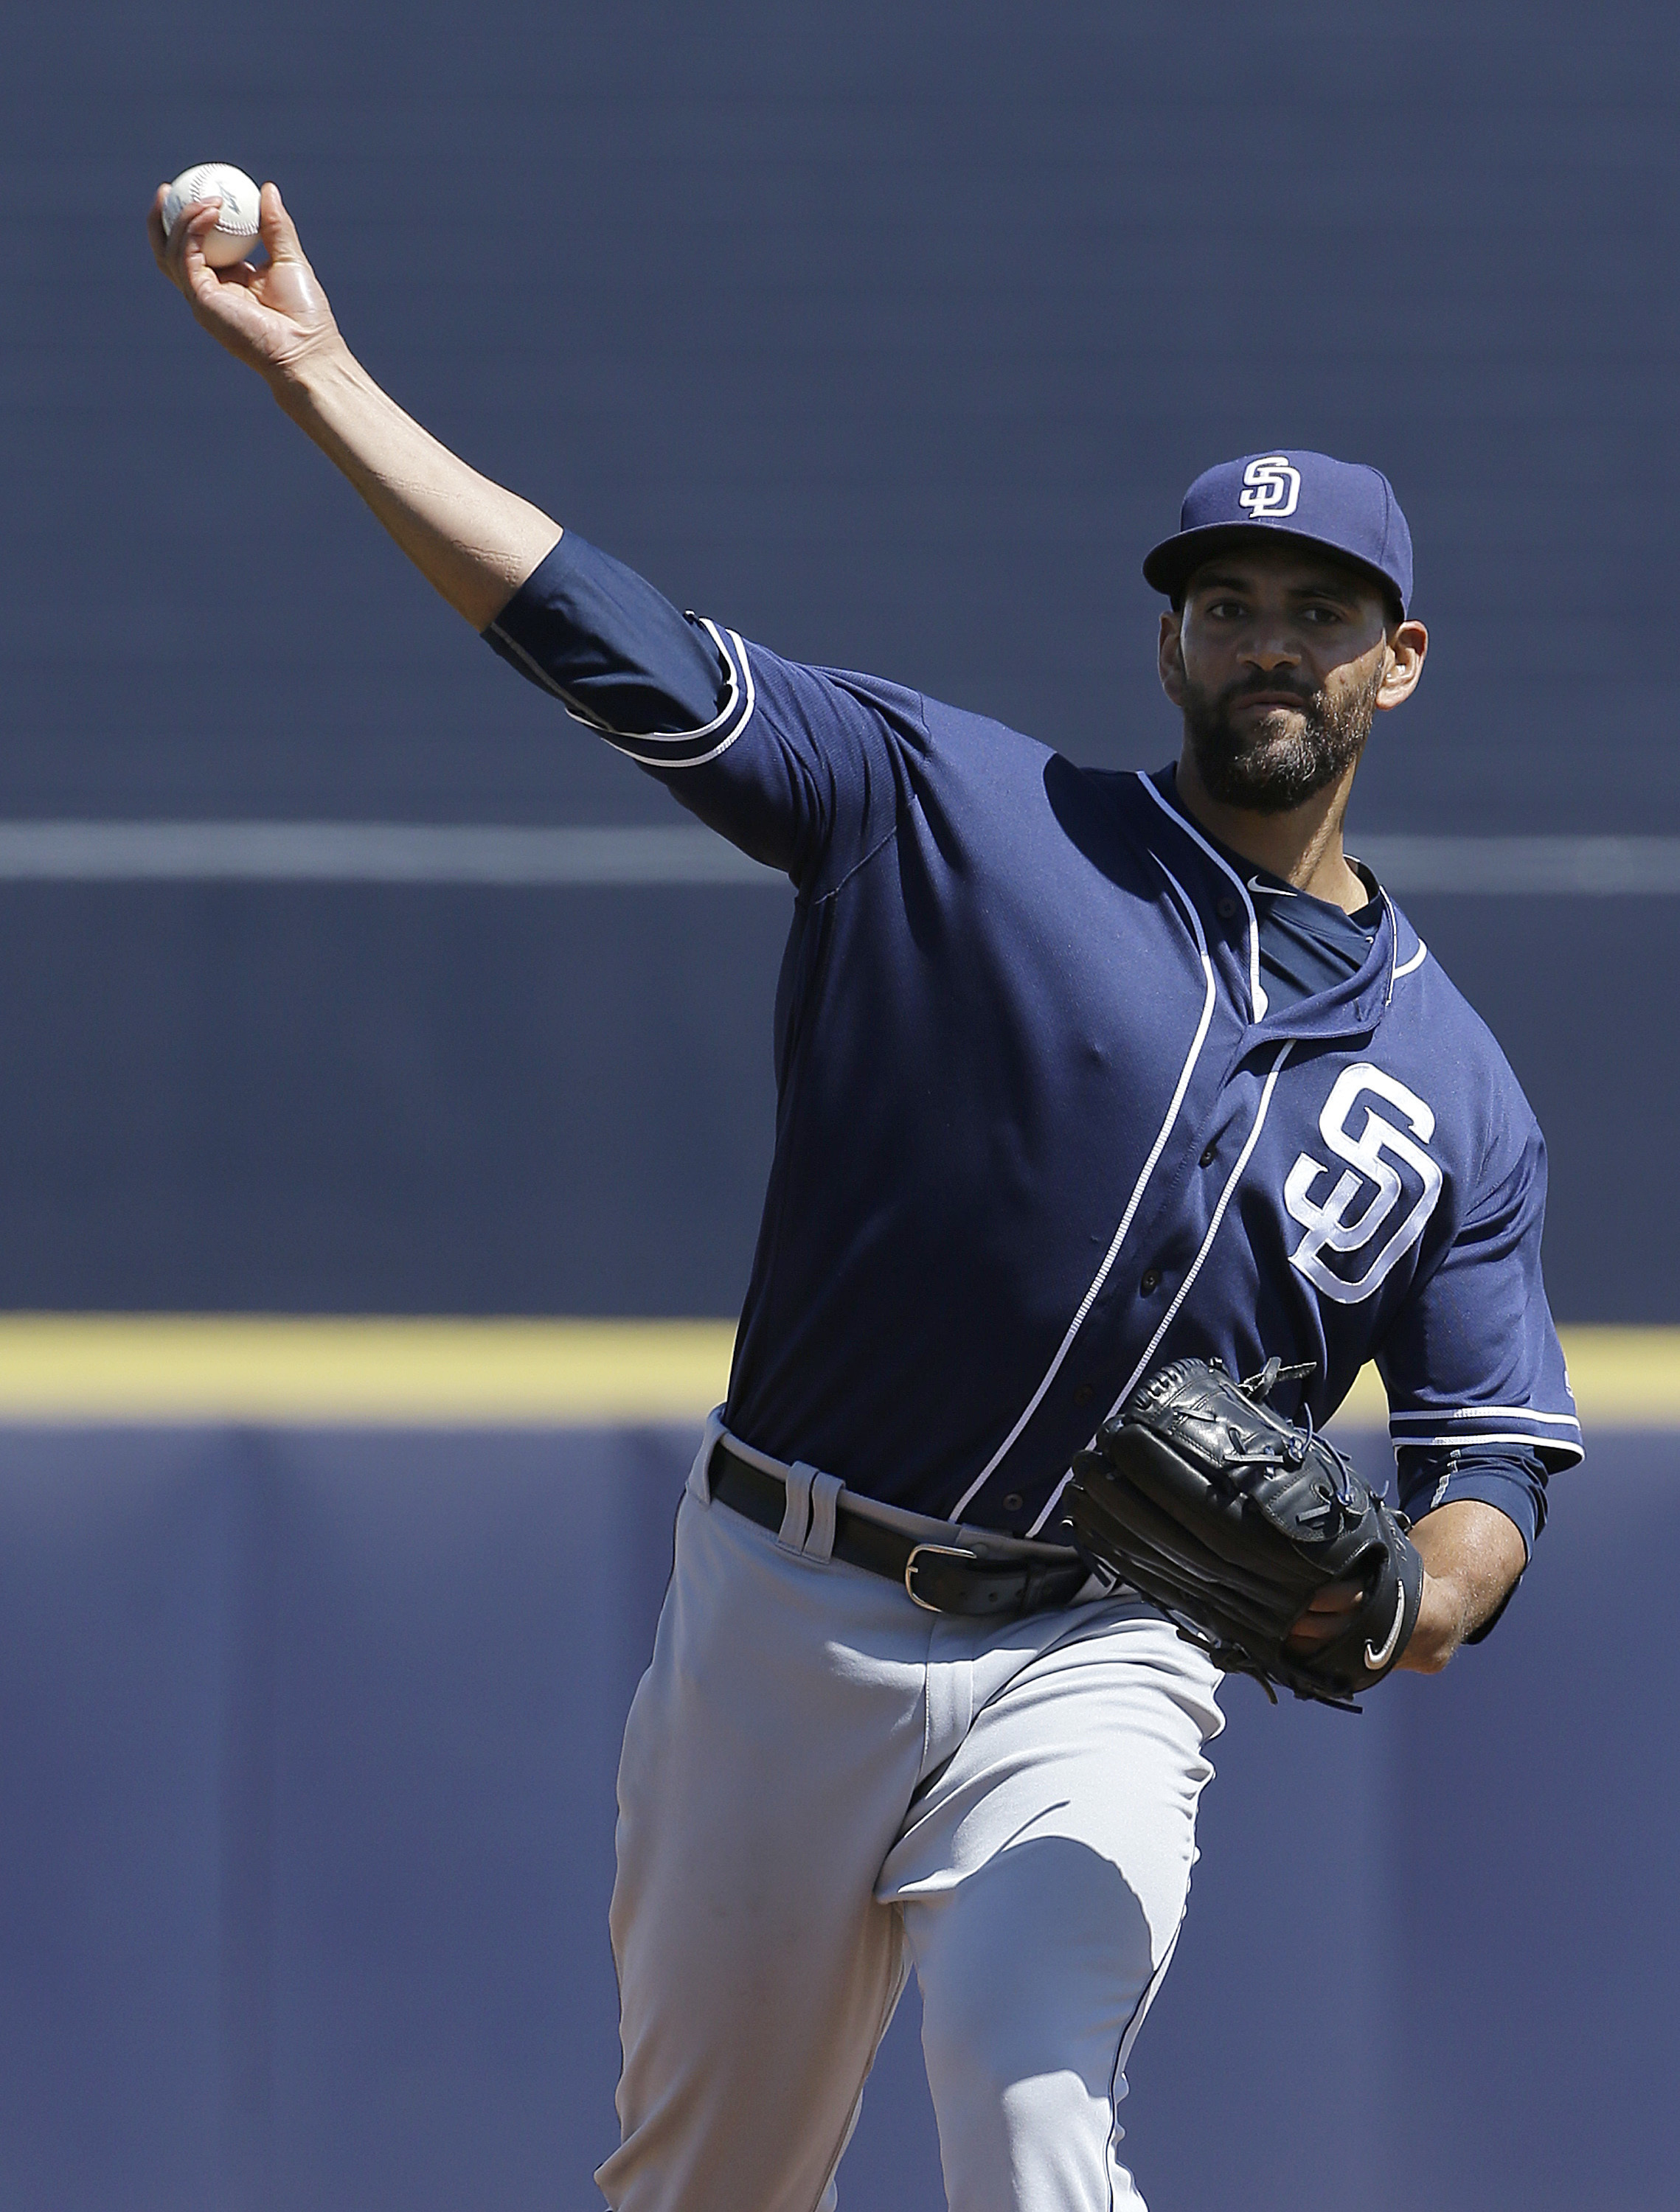 San Diego Padres starting pitcher Tyson Ross throws before the first inning of a spring training baseball game against the Seattle Mariners in Peoria, Ariz., Wednesday, March 30, 2016. (AP Photo/Jeff Chiu)